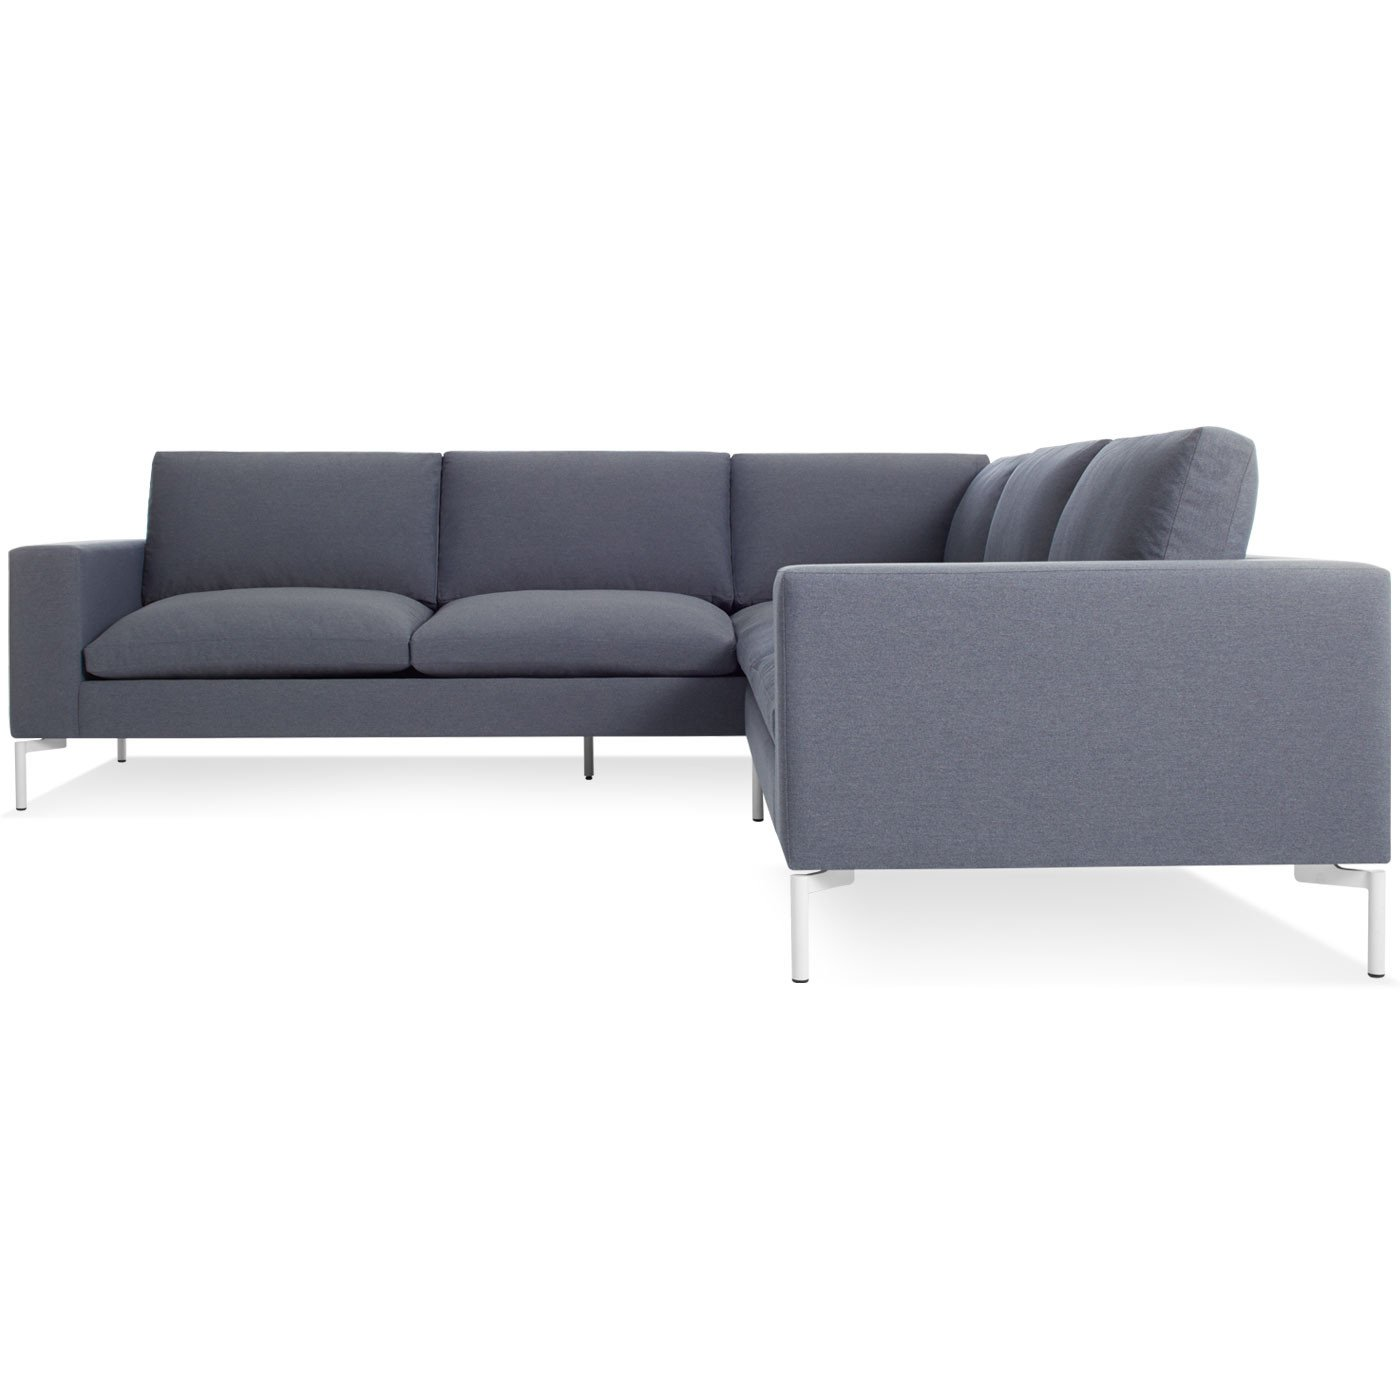 New Standard Sectional Sofa Small By Blu Dot Lekker Home